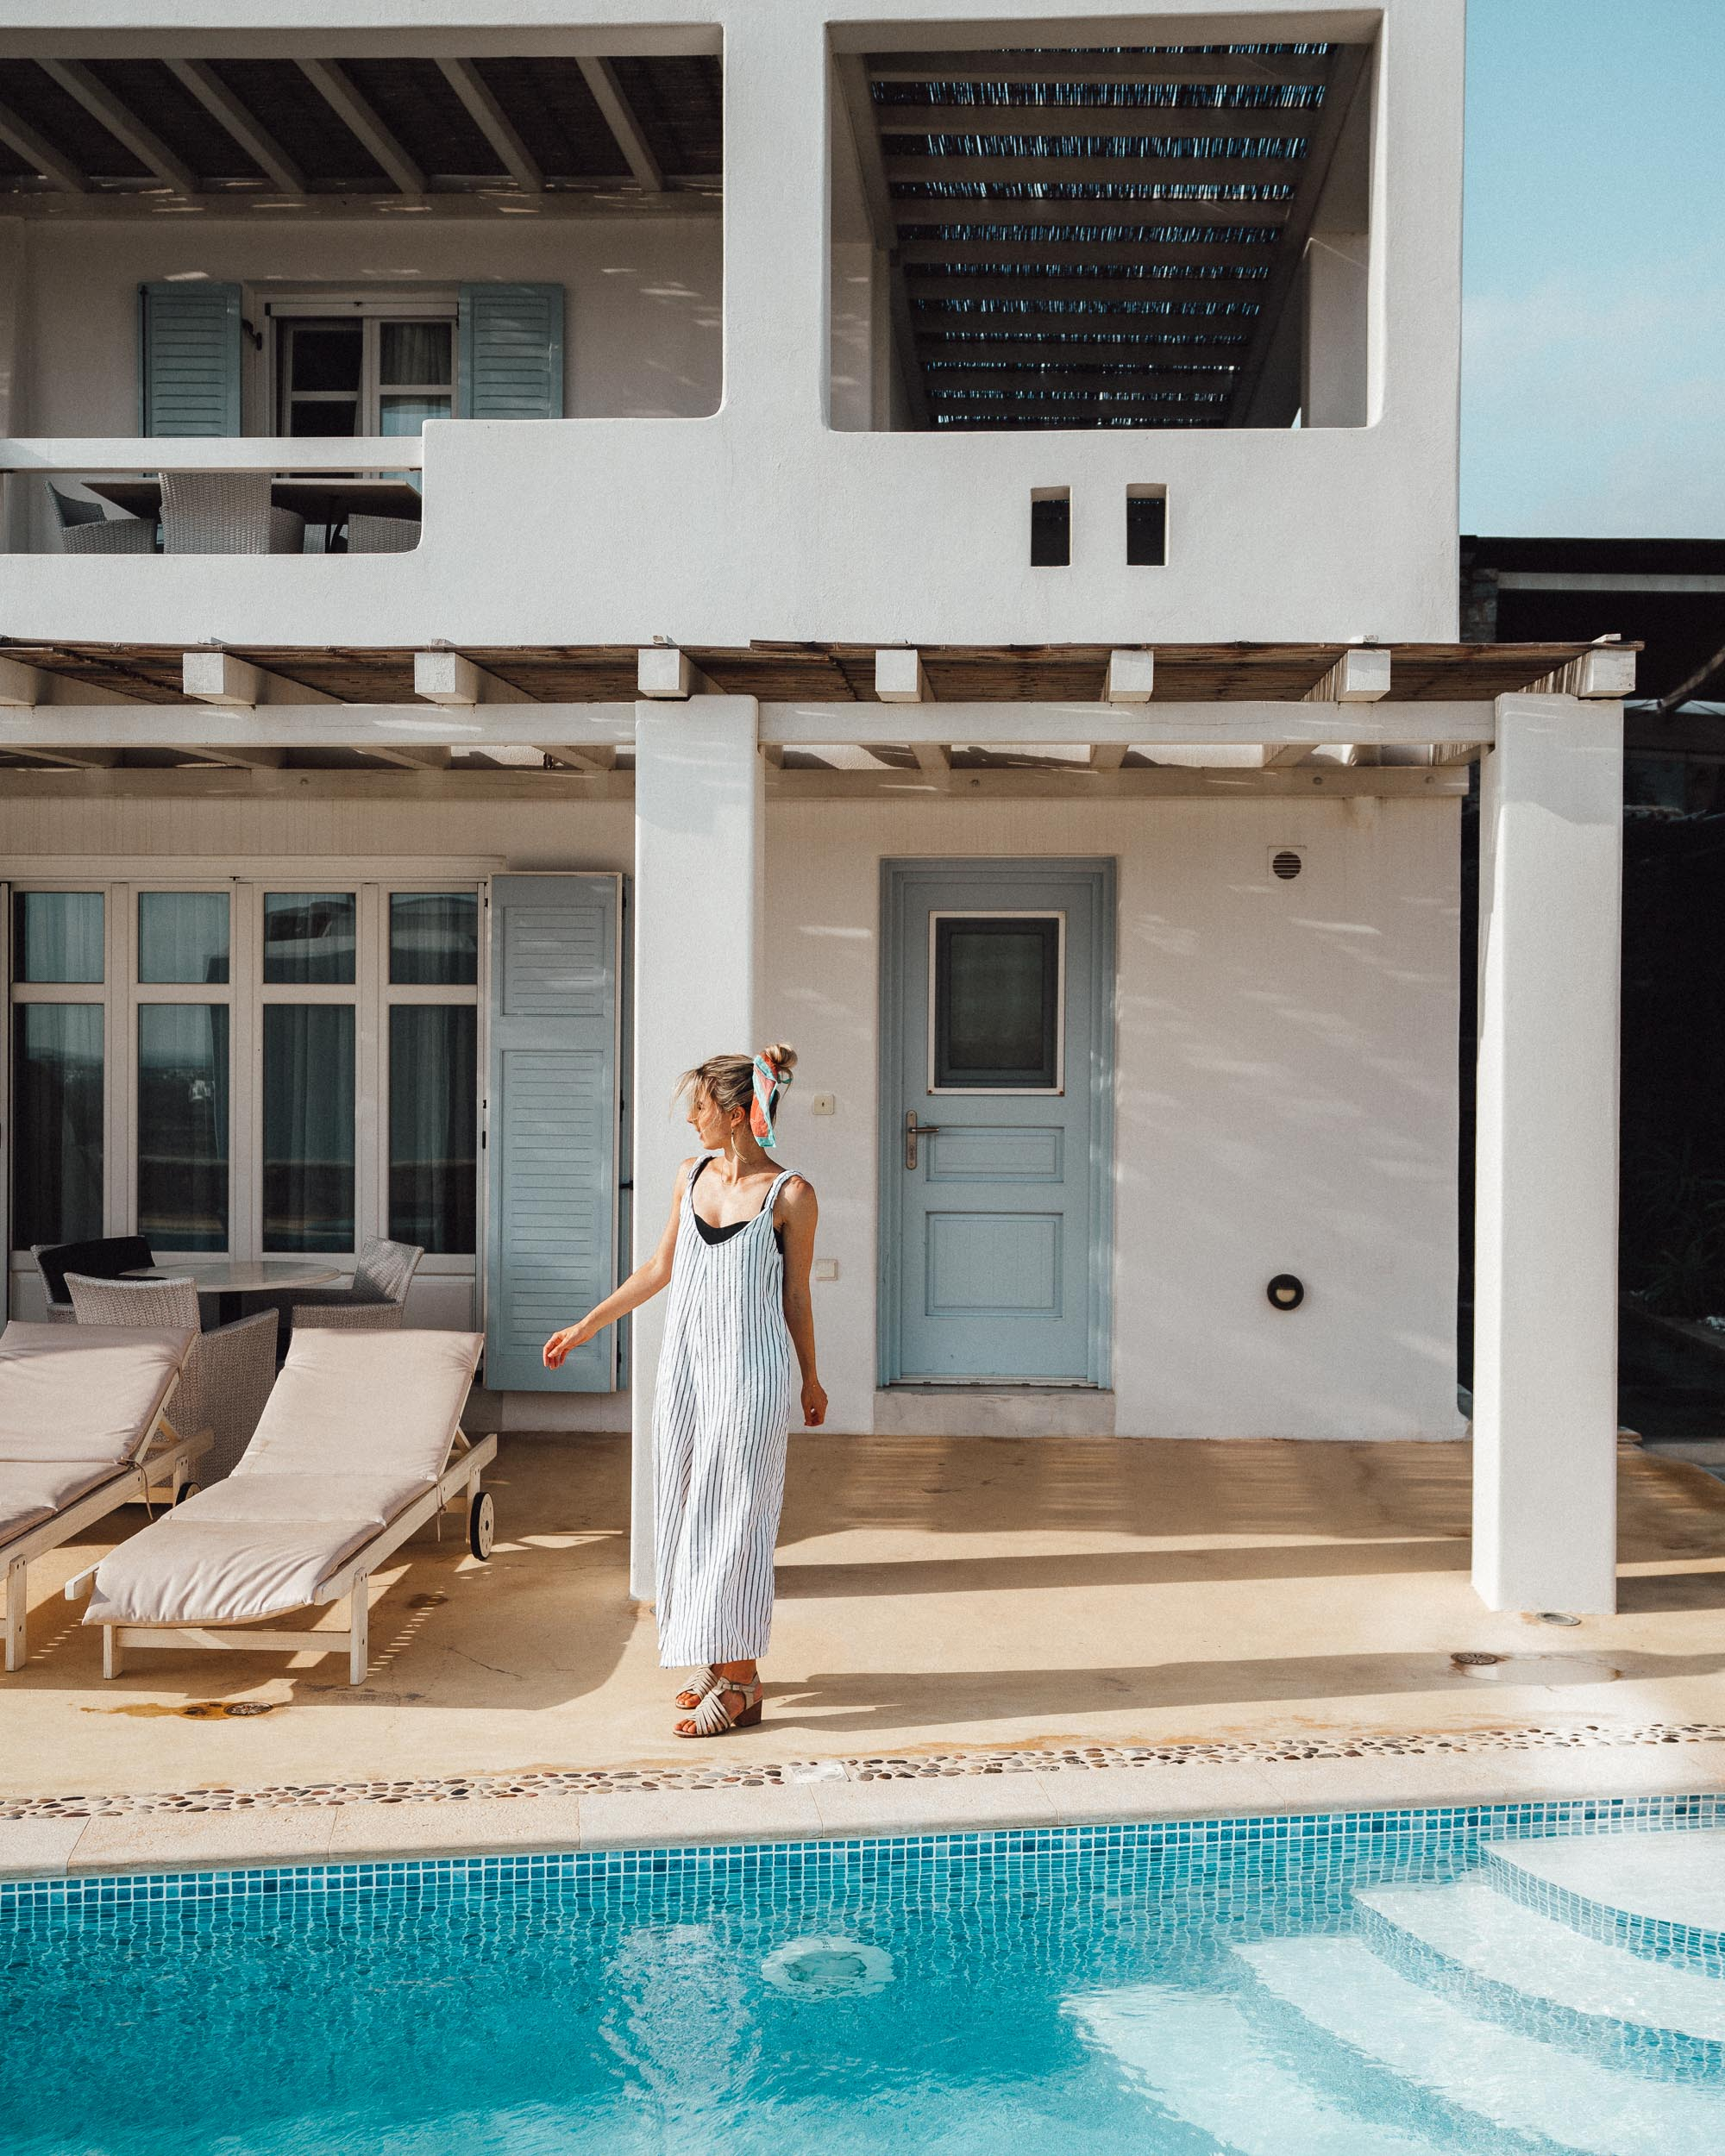 Naxian Collection hotel in Naxos, Greek Islands via @finduslost